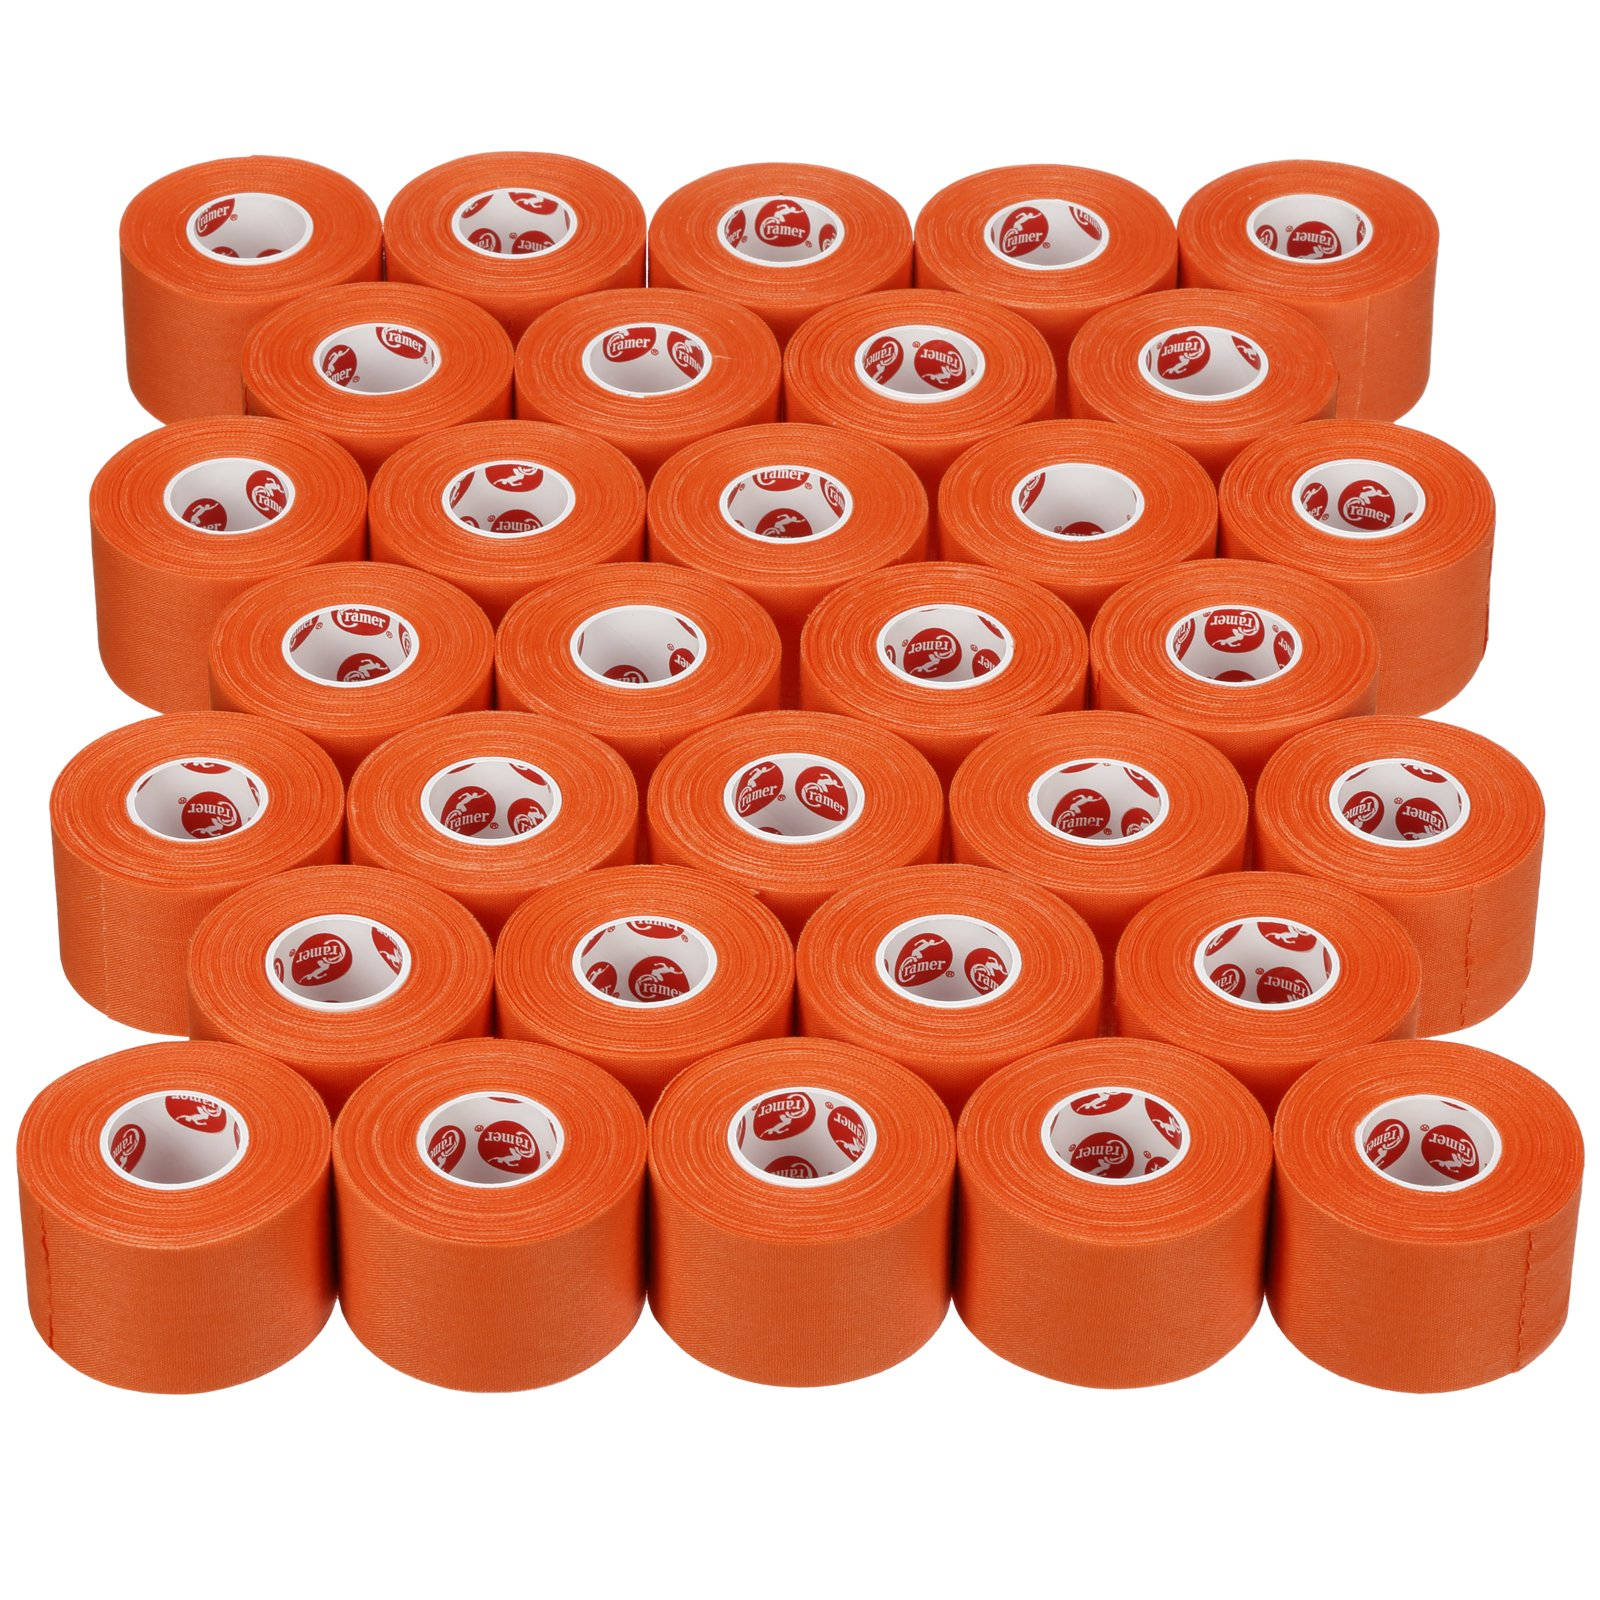 Cramer Team Color Athletic Tape for Ankle, Wrist, and Injury Taping, Helps Protect and Prevent Injuries, Promotes Faster Healing, Athletic Training First Aid Supplies, 1.5'', Bulk 32 Roll Case